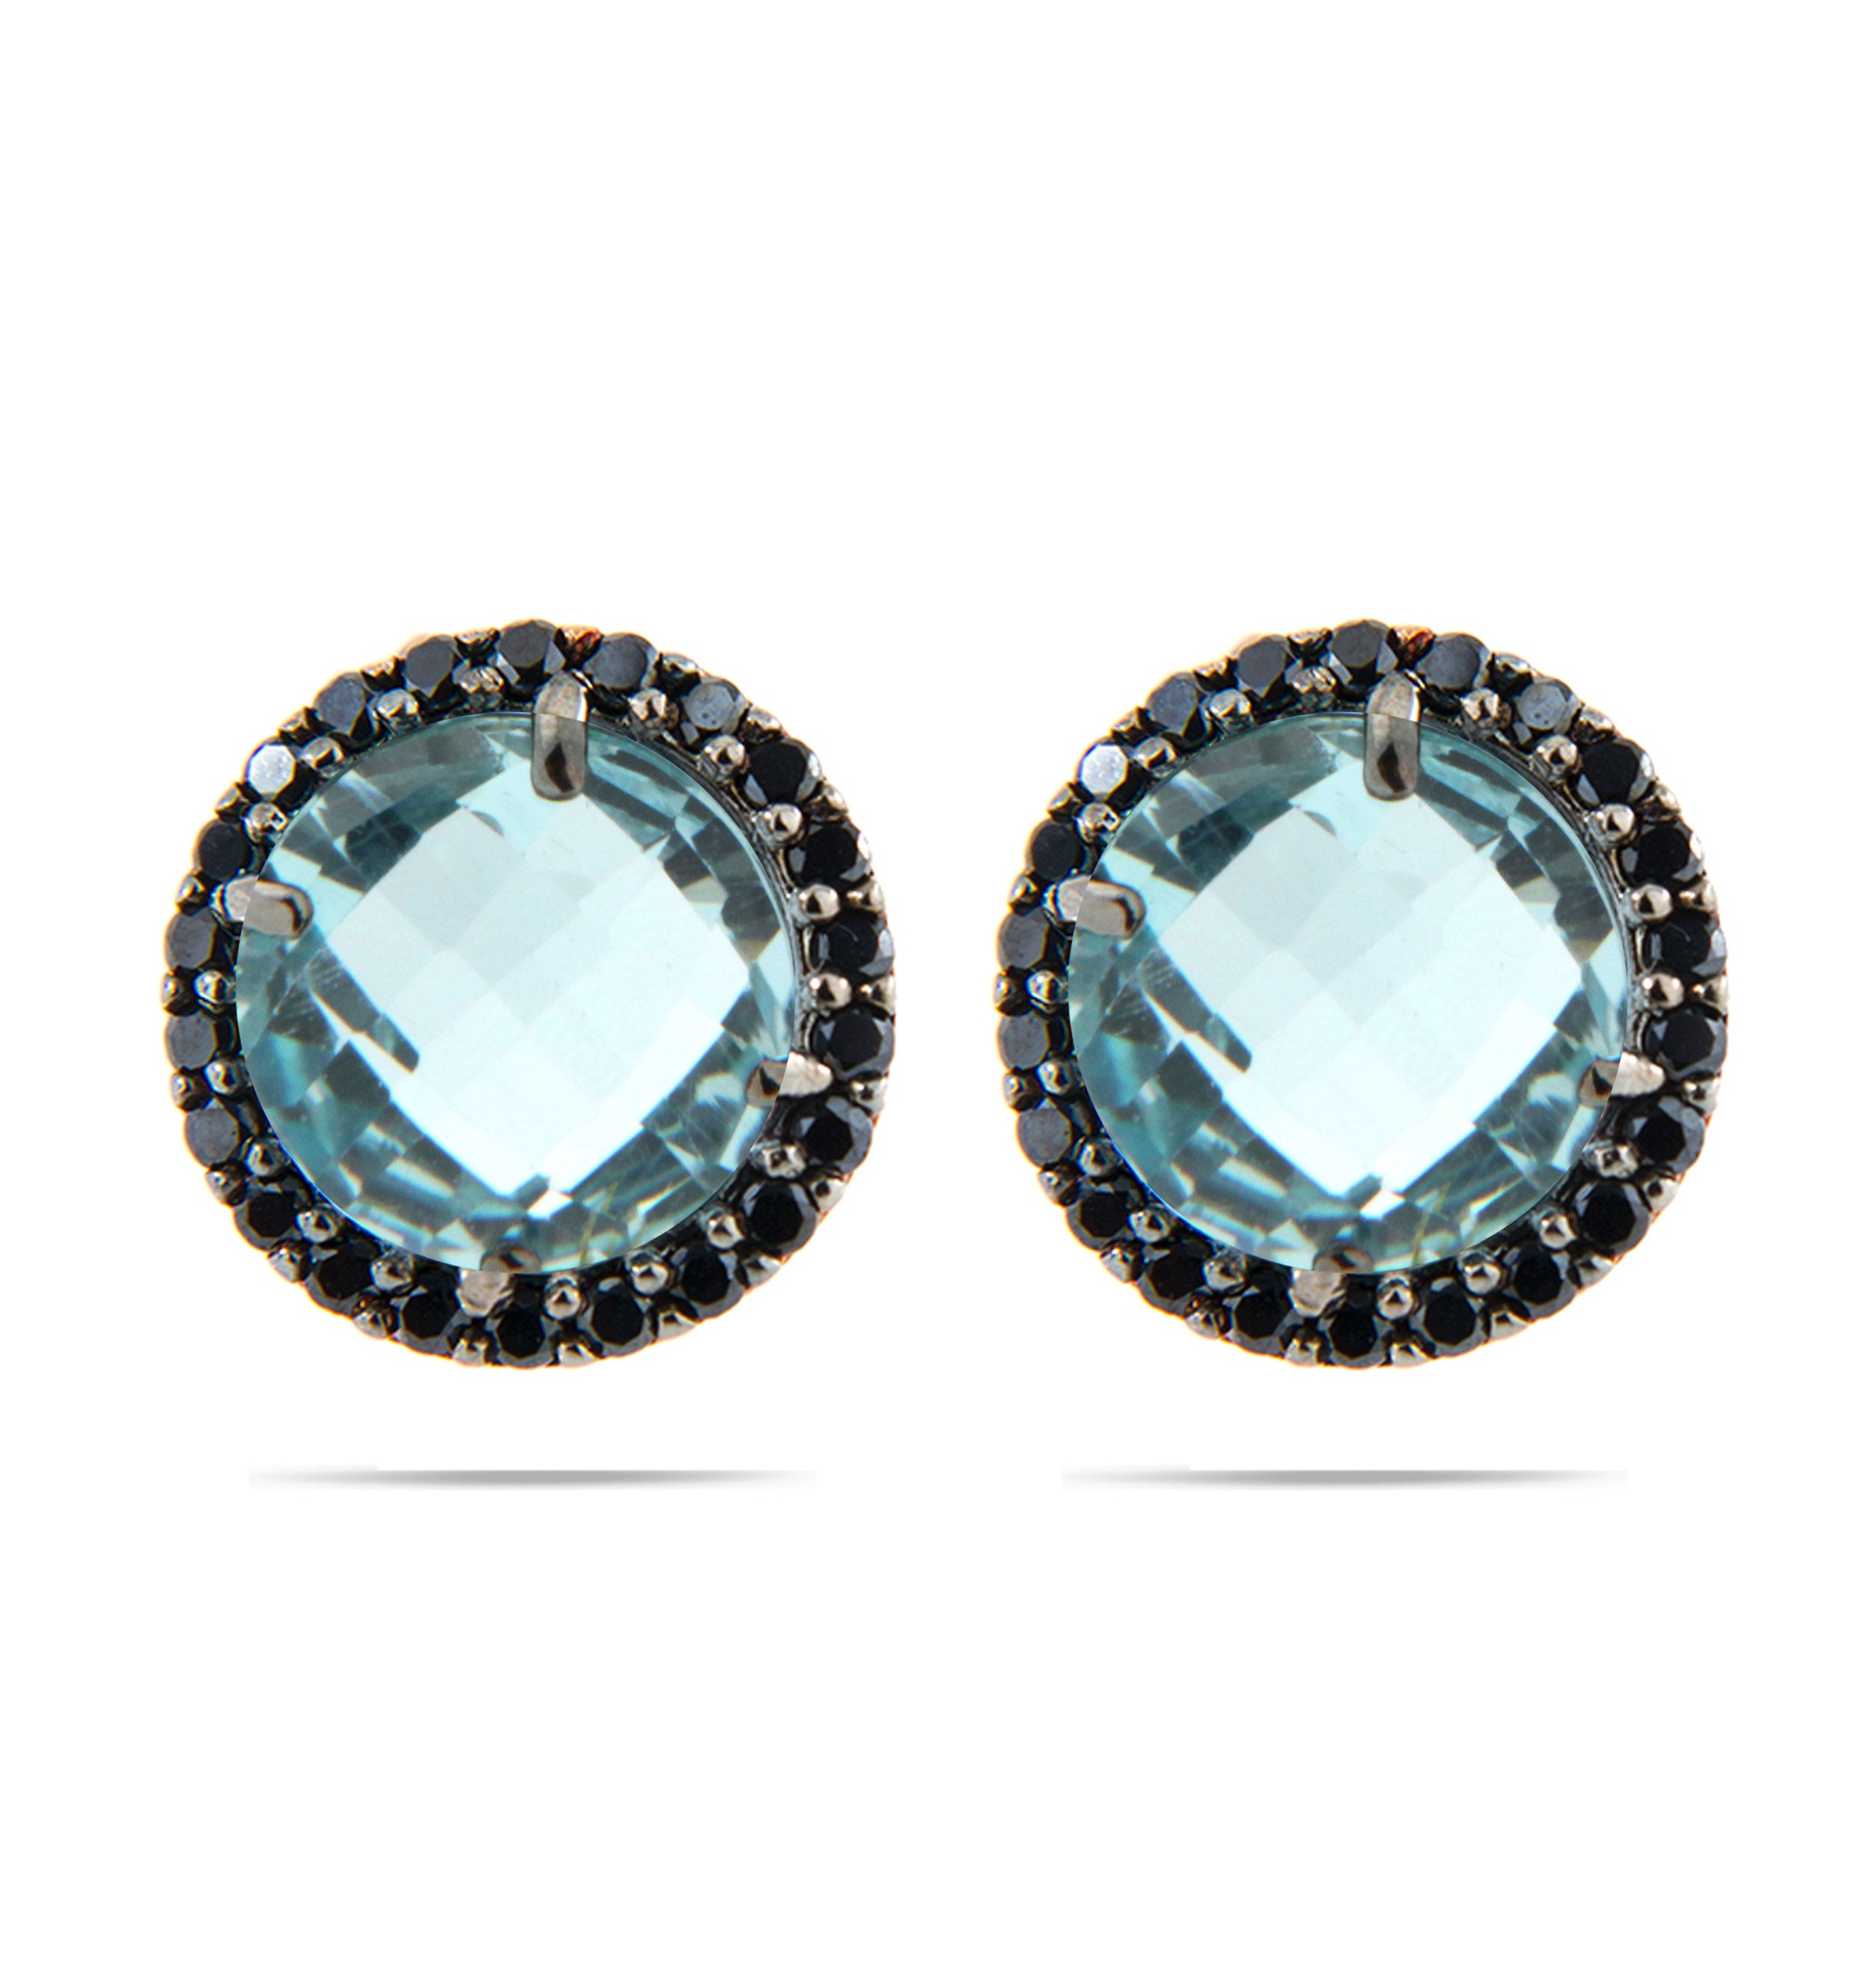 Forever Last 18k Gold Plated Women's Blue Topaz Earrings